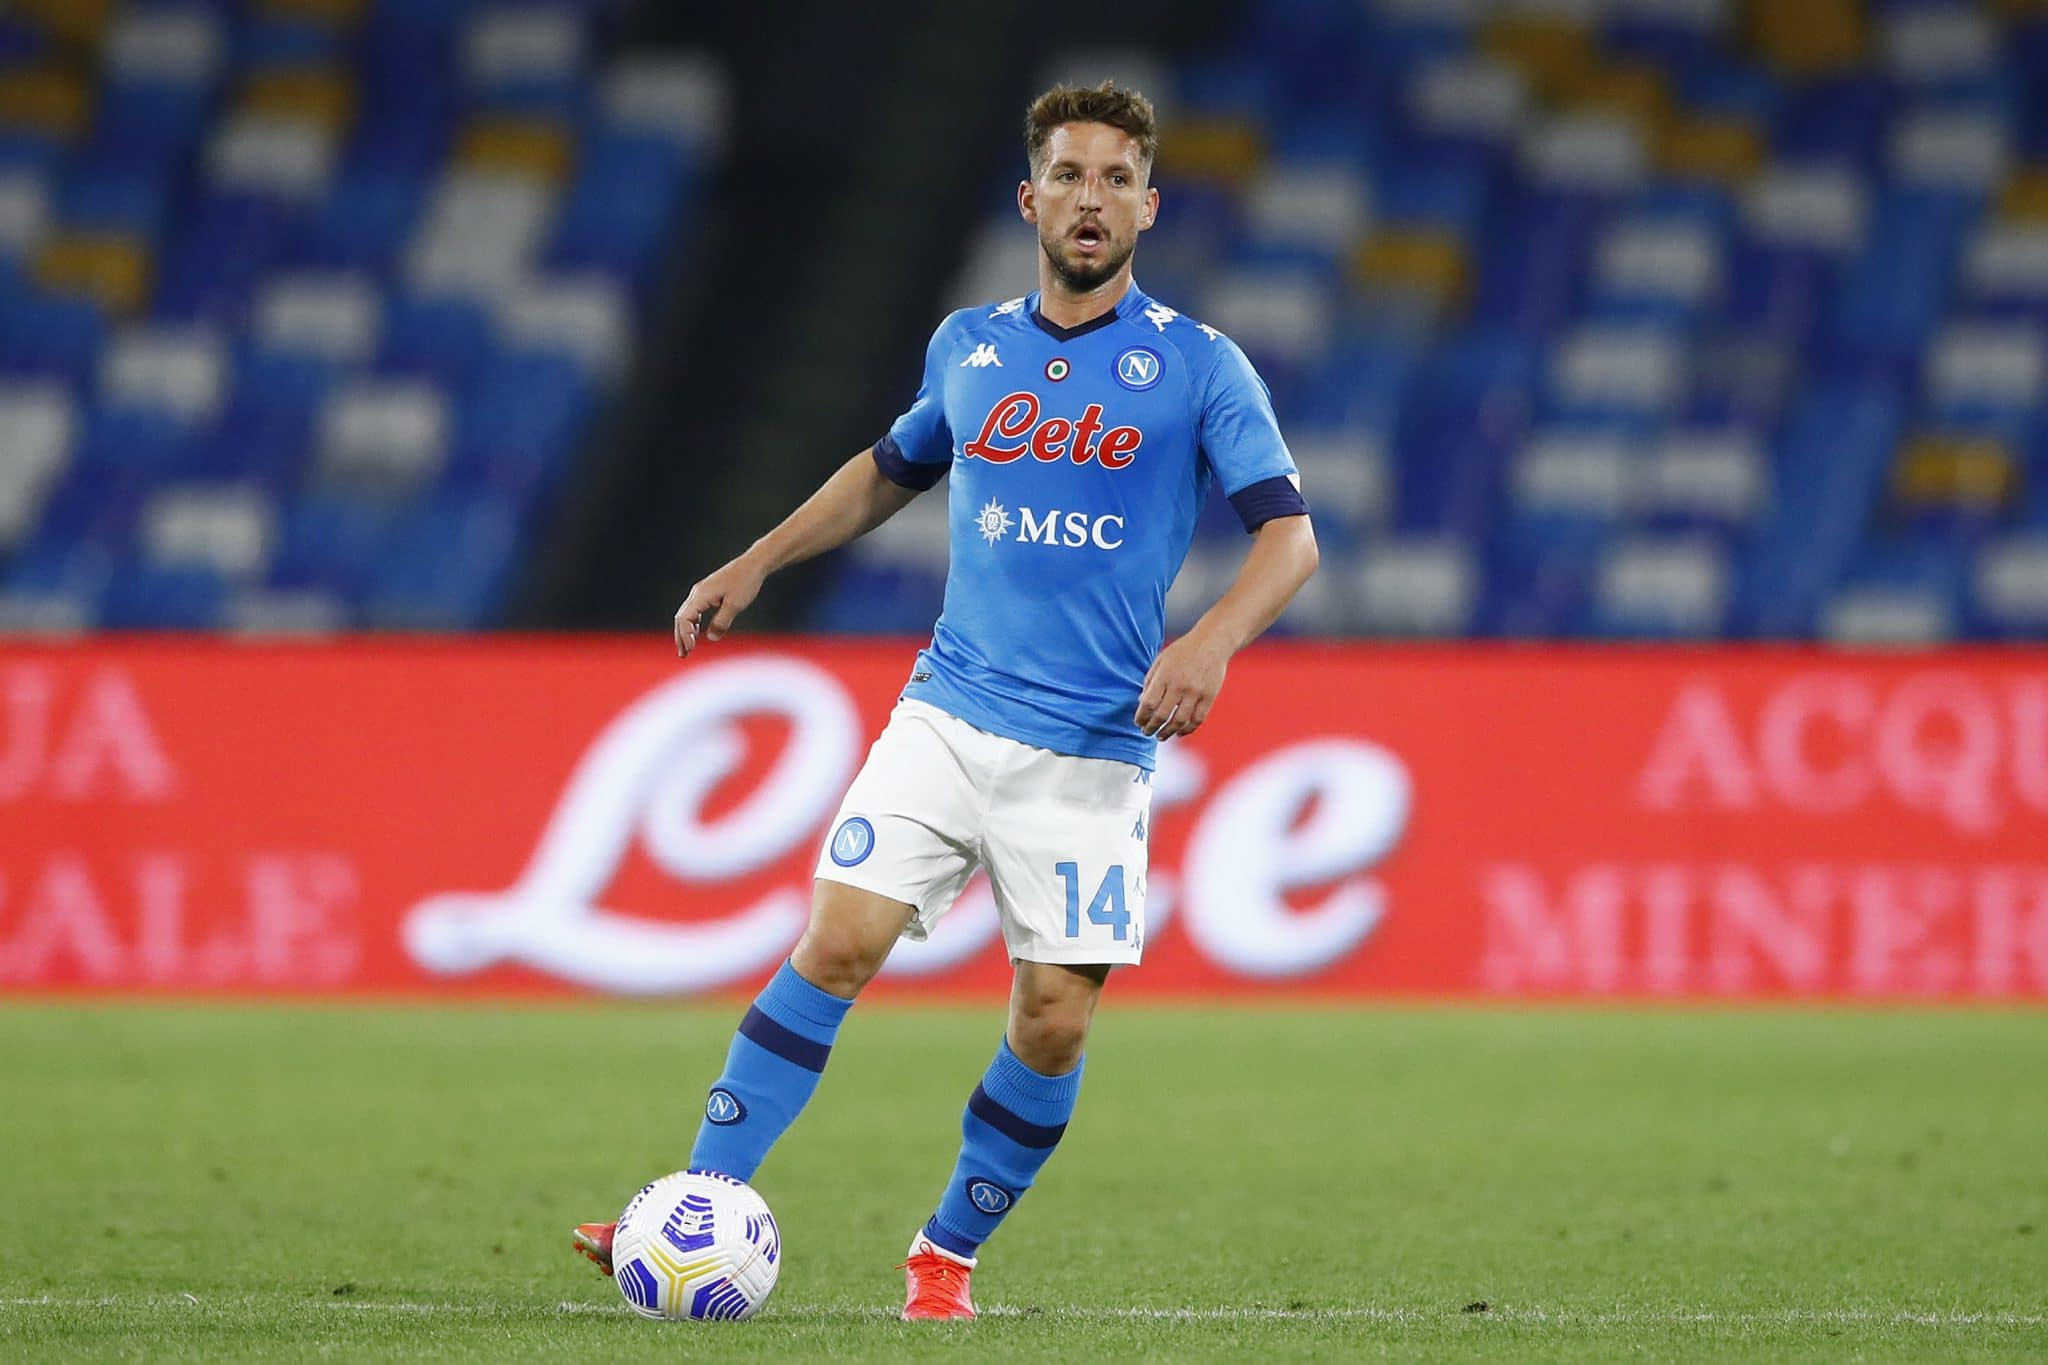 NAPLES, ITALY - MAY 23: (BILD ZEITUNG OUT) Dries Mertens of SSC Napoli controls the ball during the Serie A match between SSC Napoli and Hellas Verona FC at Stadio Diego Armando Maradona on May 23, 2021 in Naples, Italy. (Photo by Matteo Ciambelli/DeFodi Images via Getty Images)